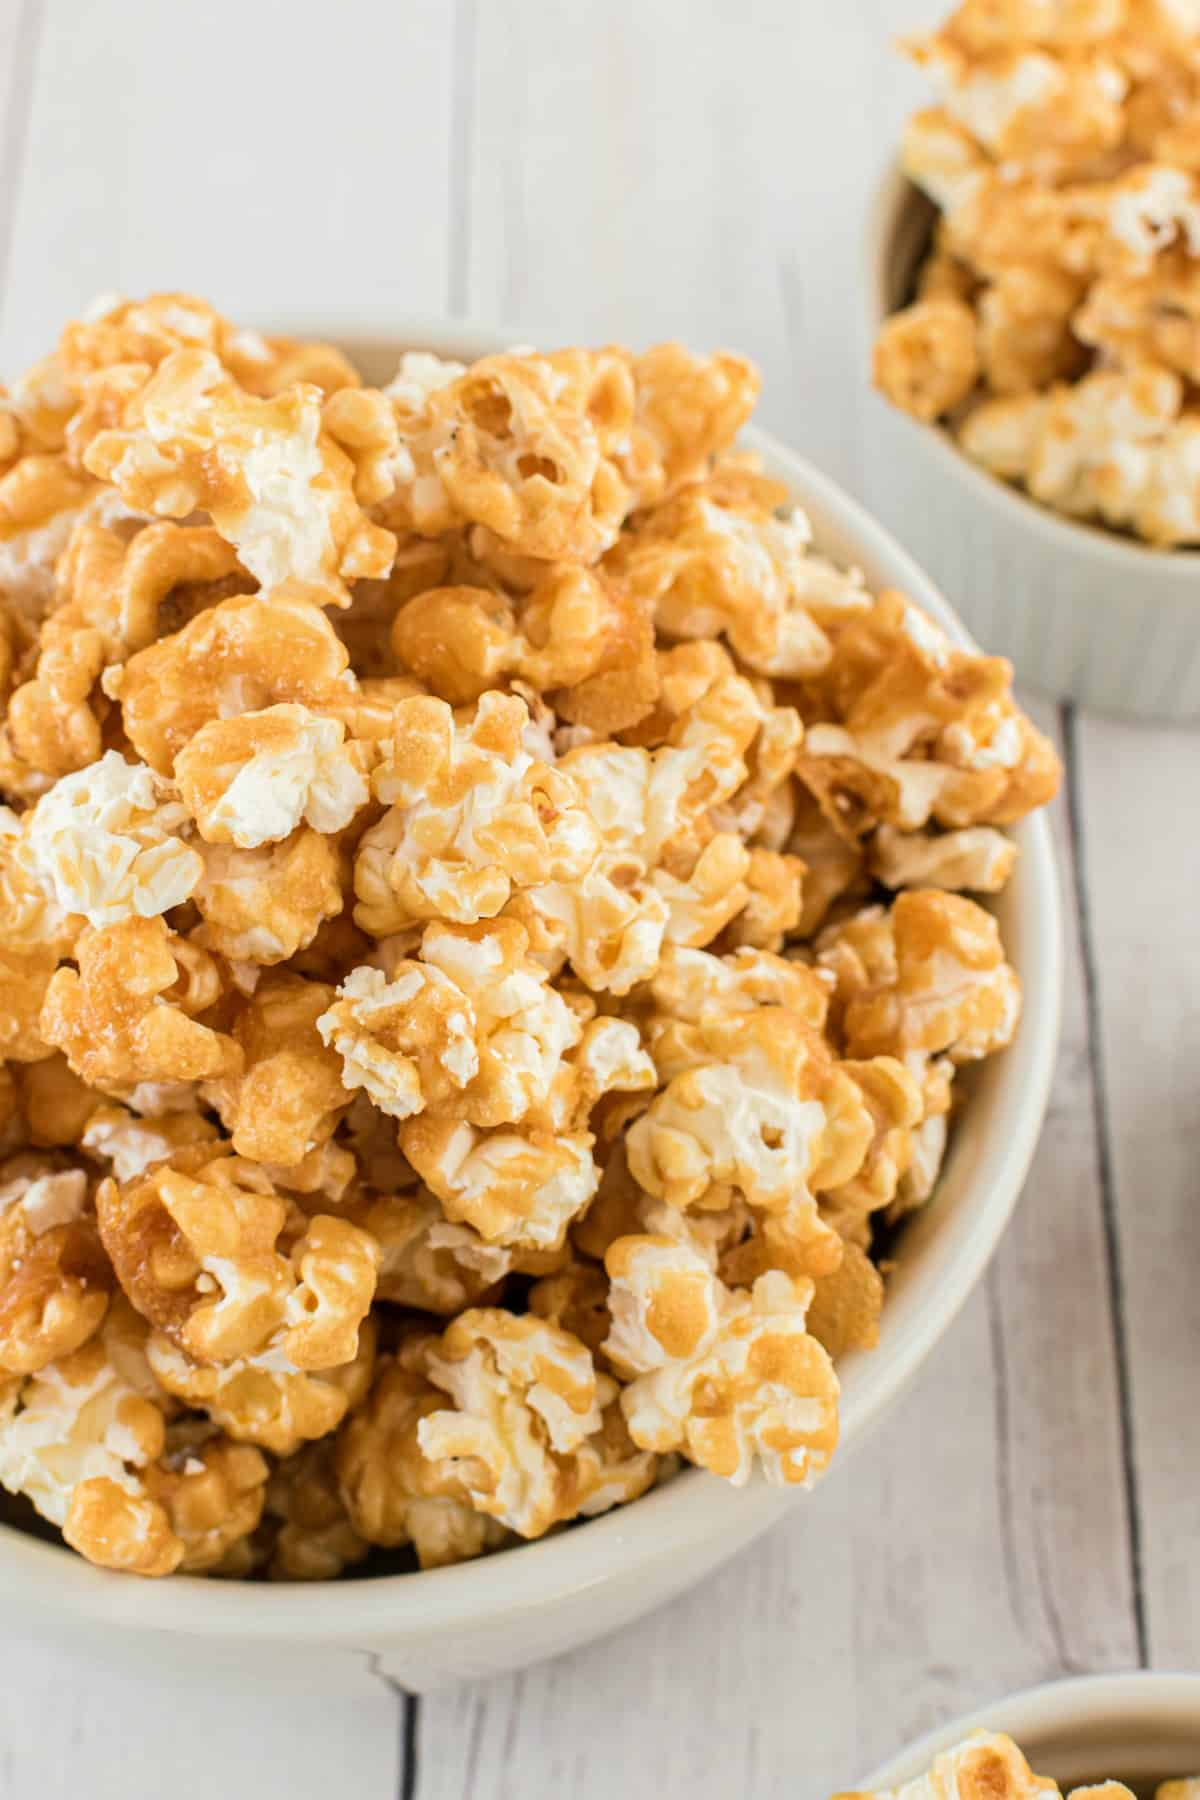 Caramel corn in a white bowl for serving.